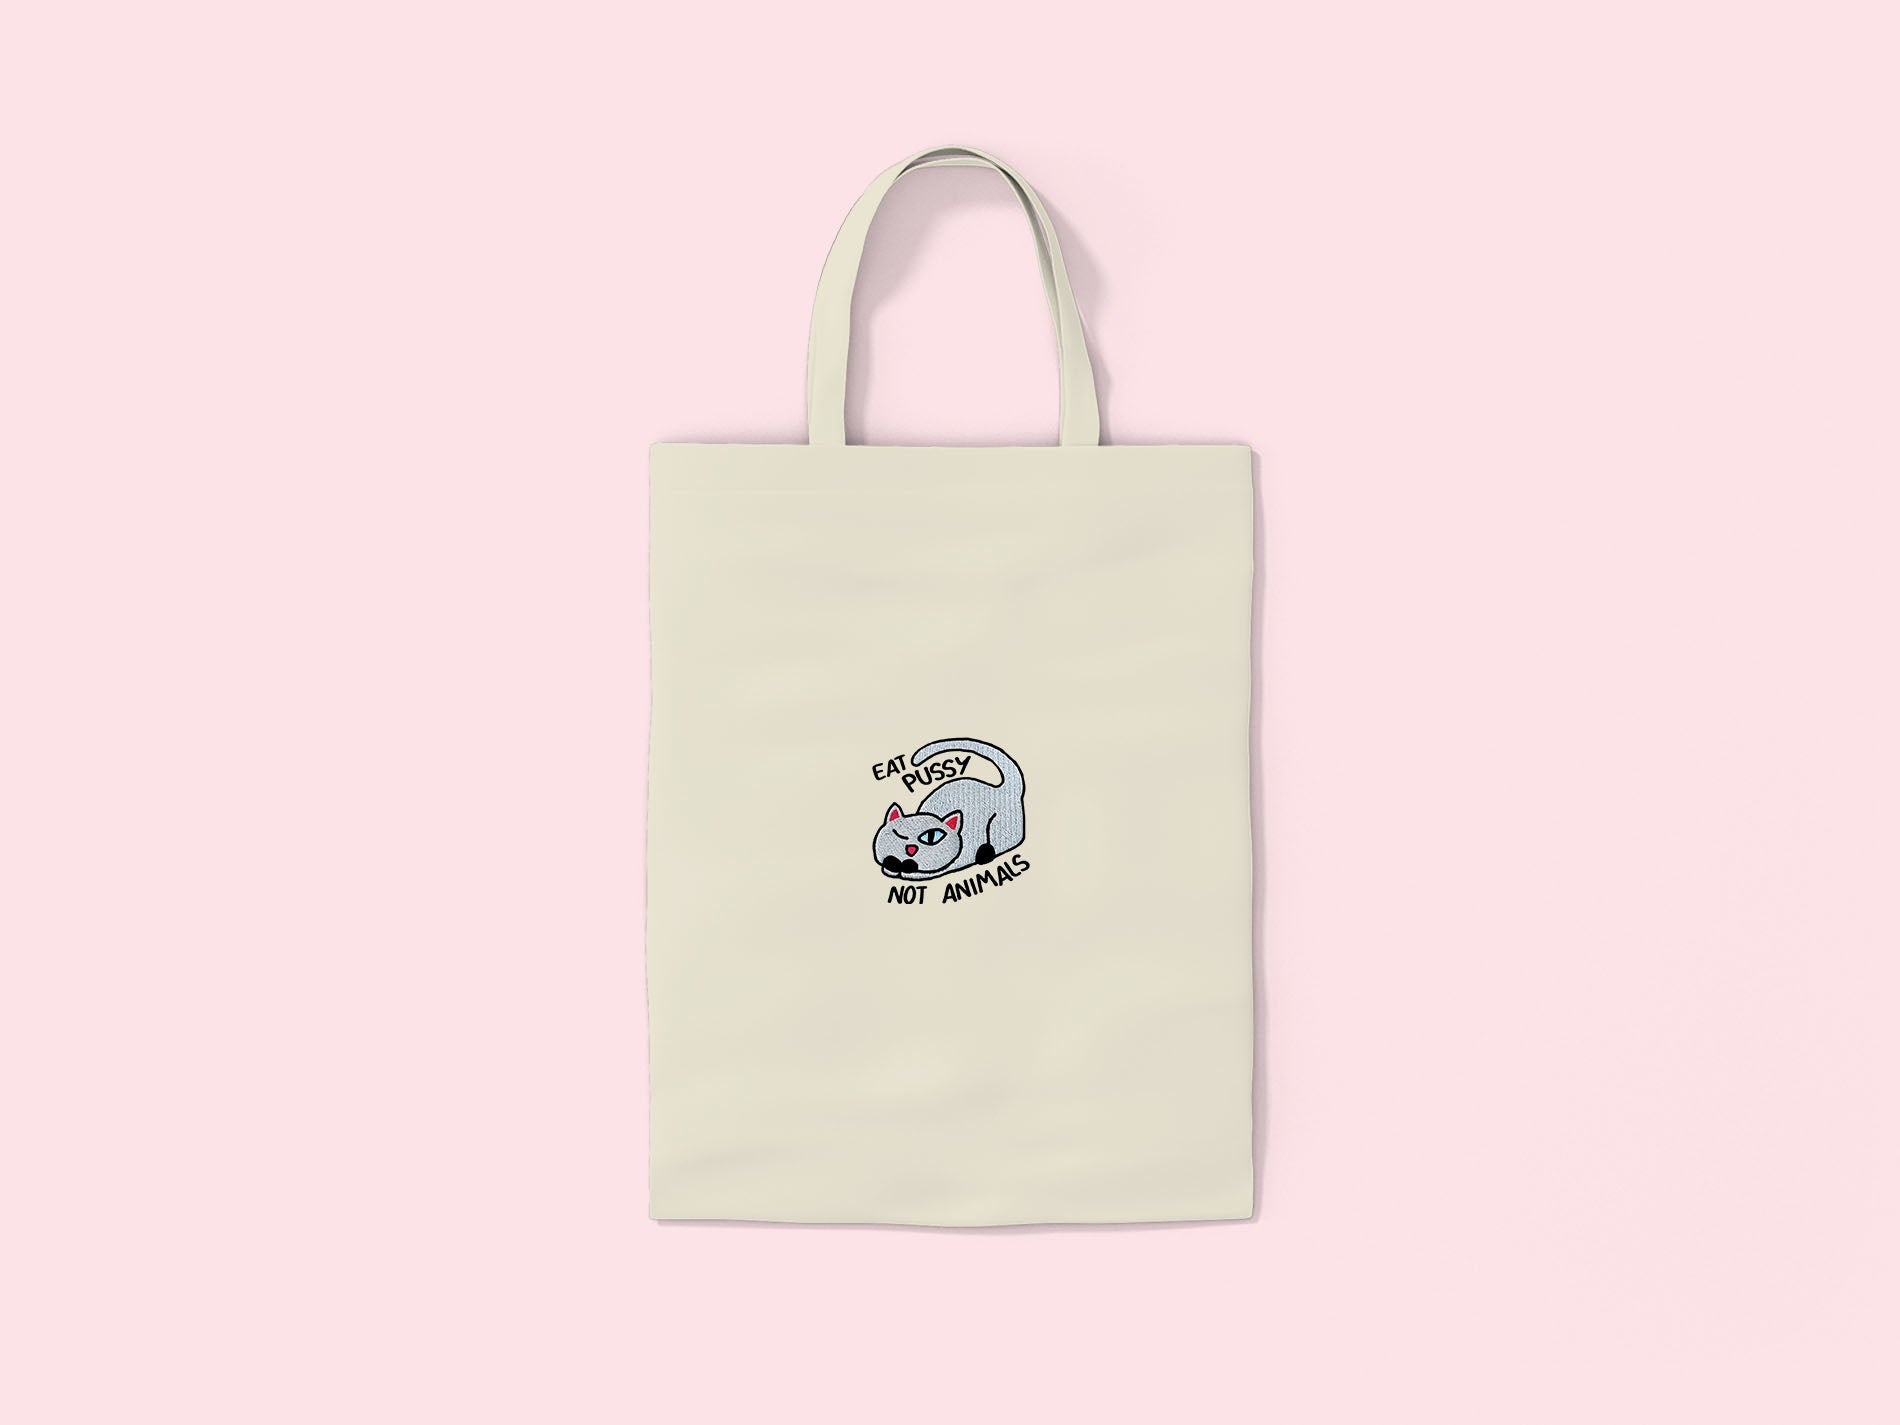 EAT PUSSY- Embroidered Tote Bag